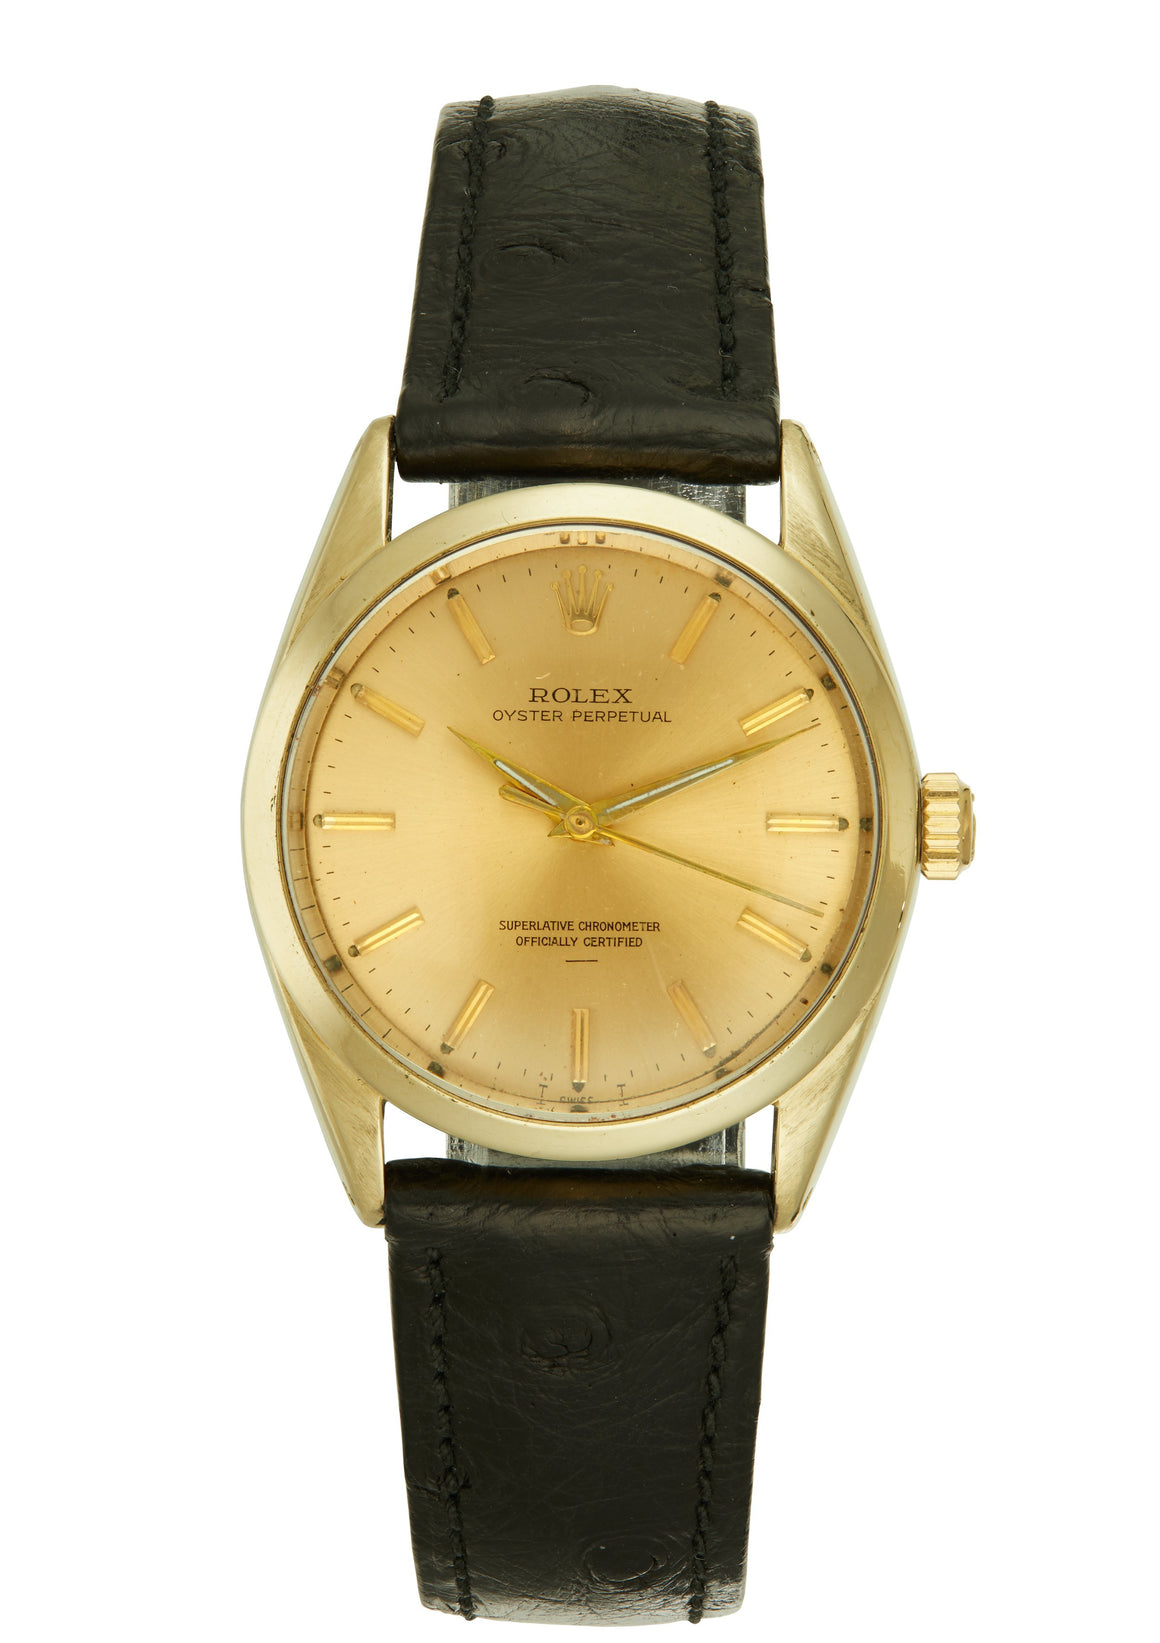 Rolex Oyster Perpetual Watch, Steel & Gold-Capped, Underline Dial